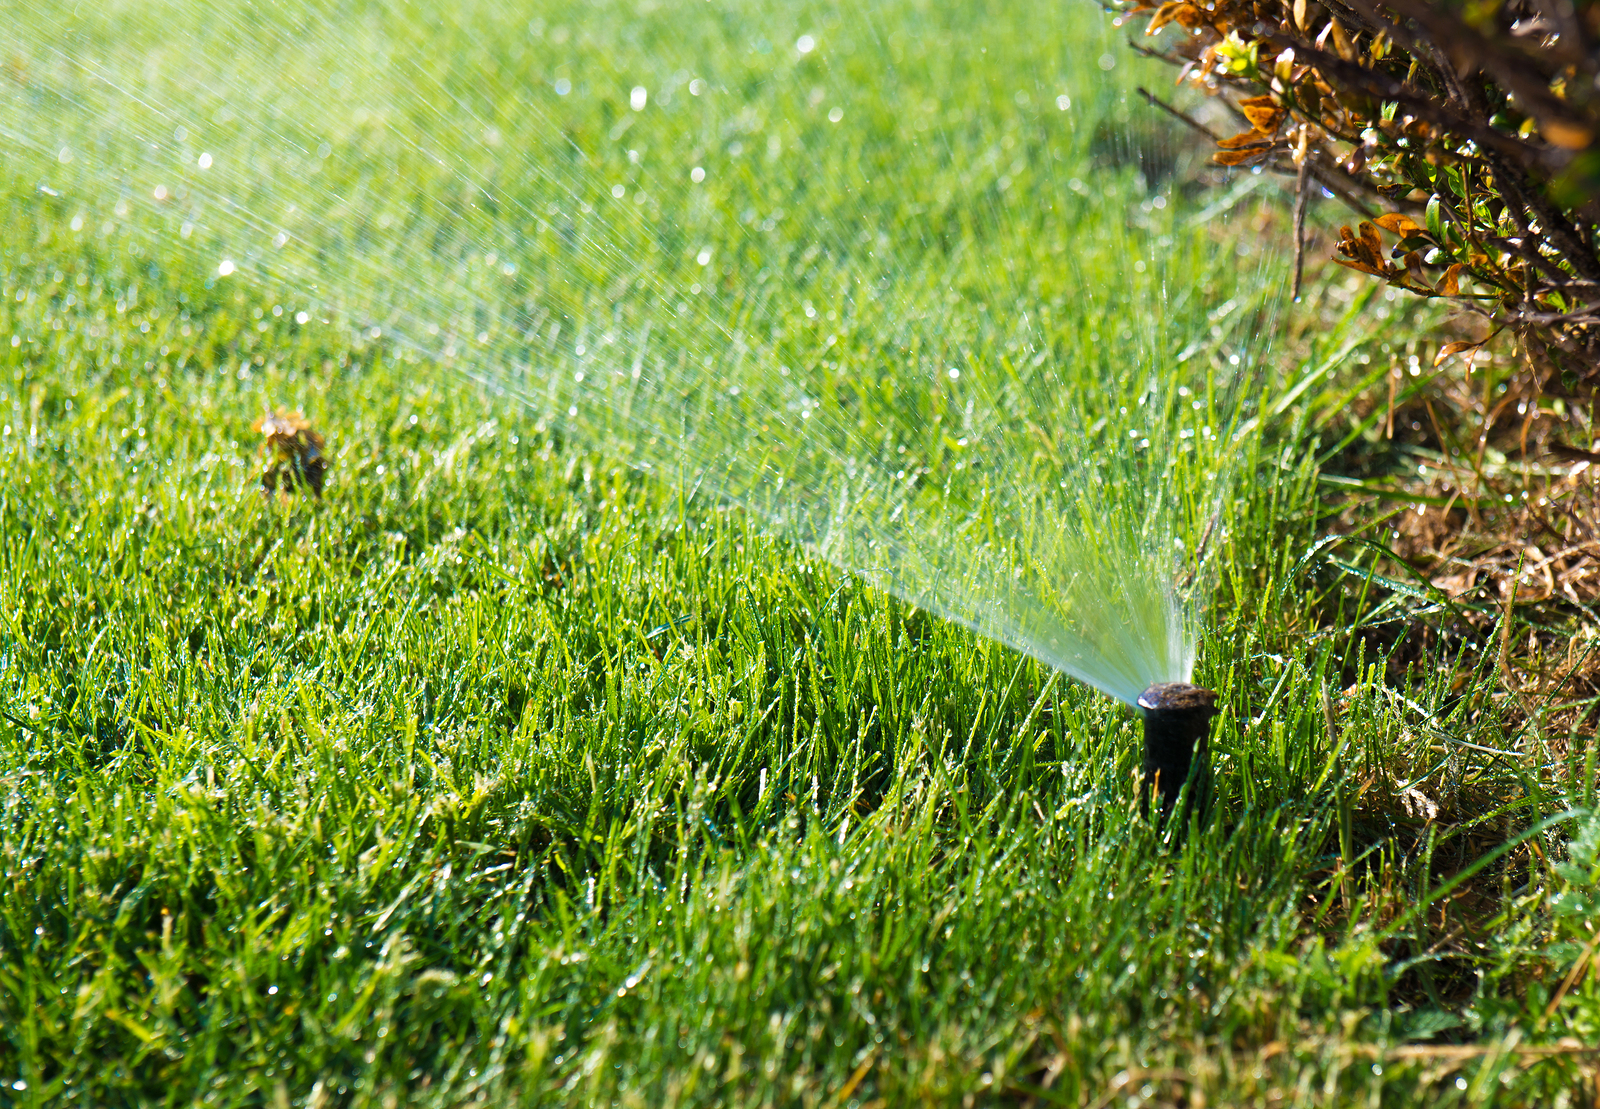 Lawn water sprinkler spraying water over grass in garden_335228